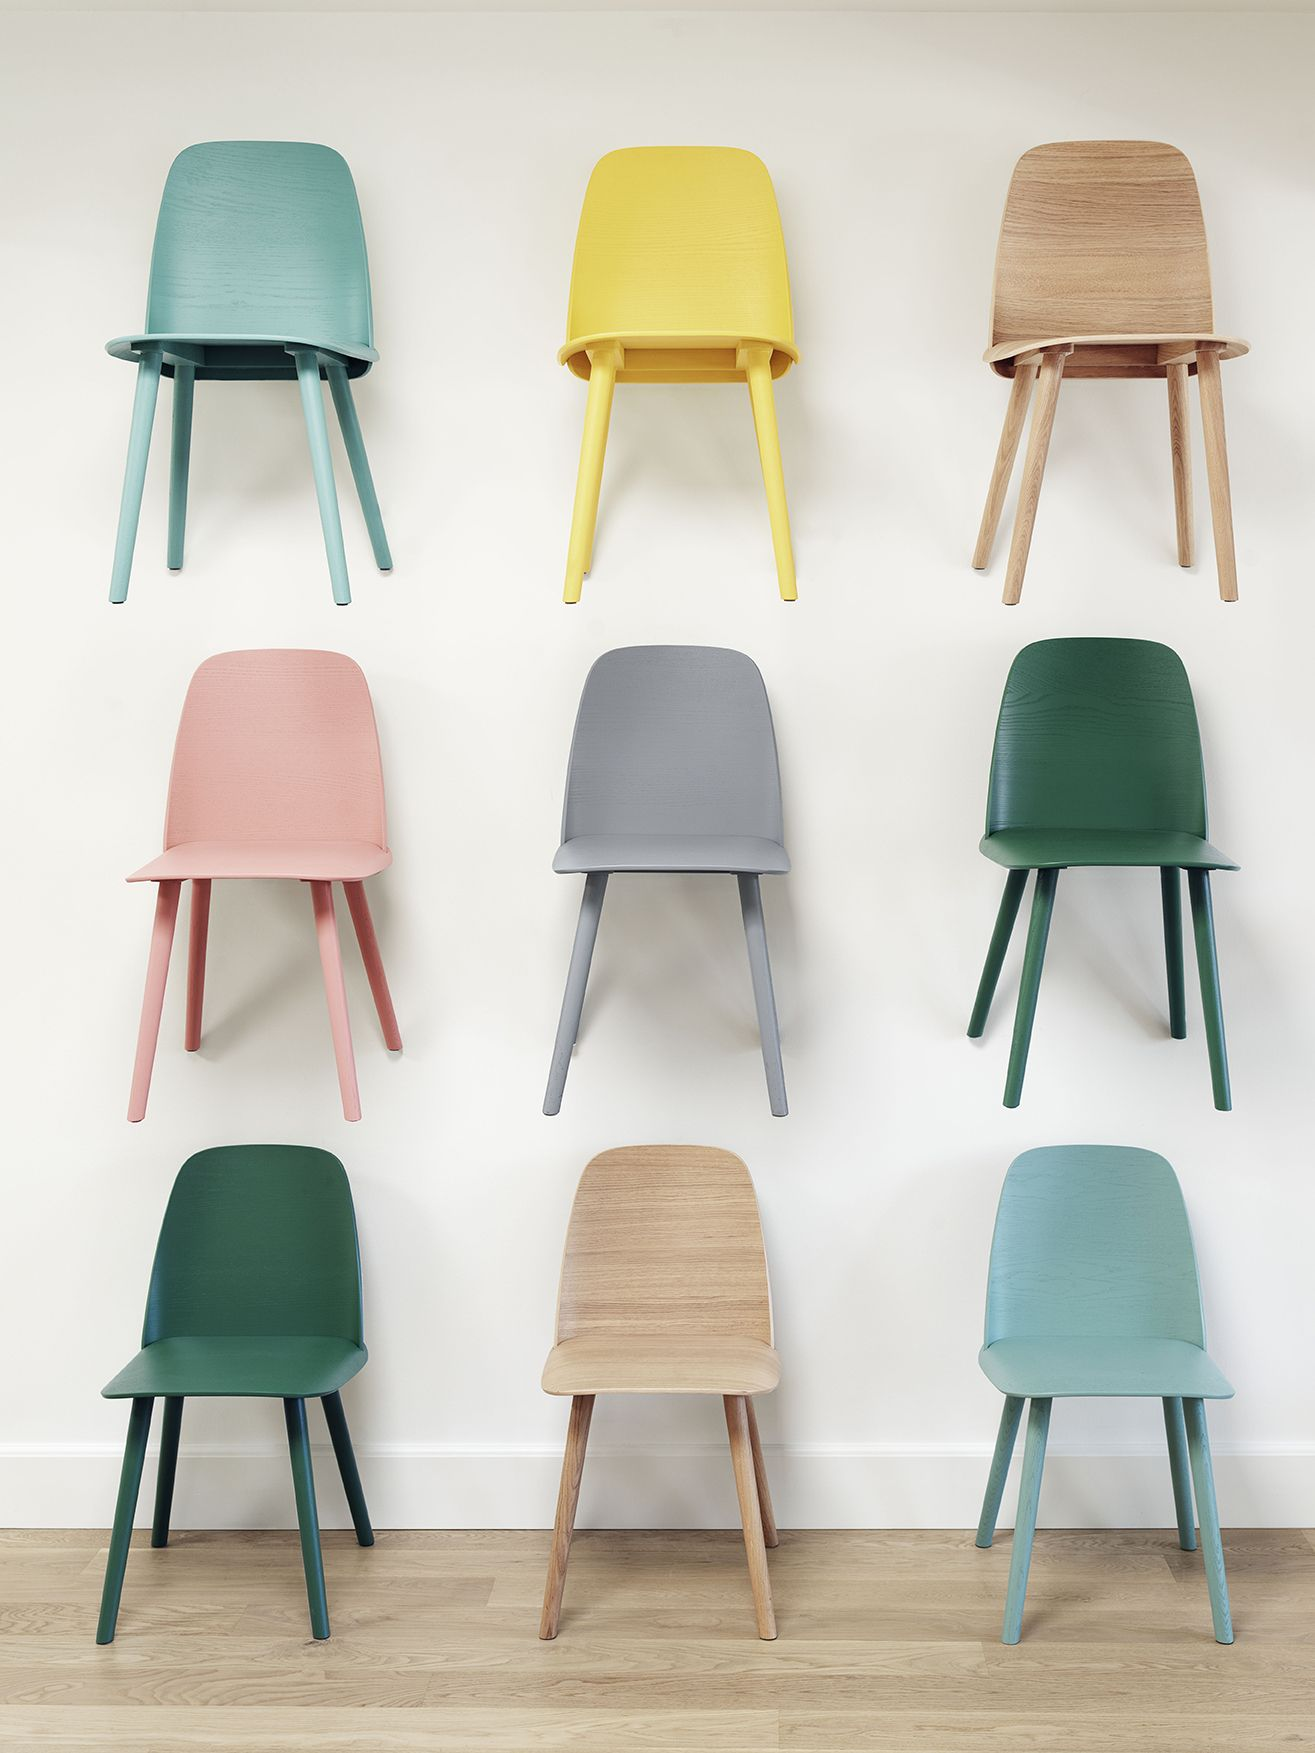 Muuto   Designs   Furniture   Chairs   Nerd   Designed By David Geckeler    Muuto